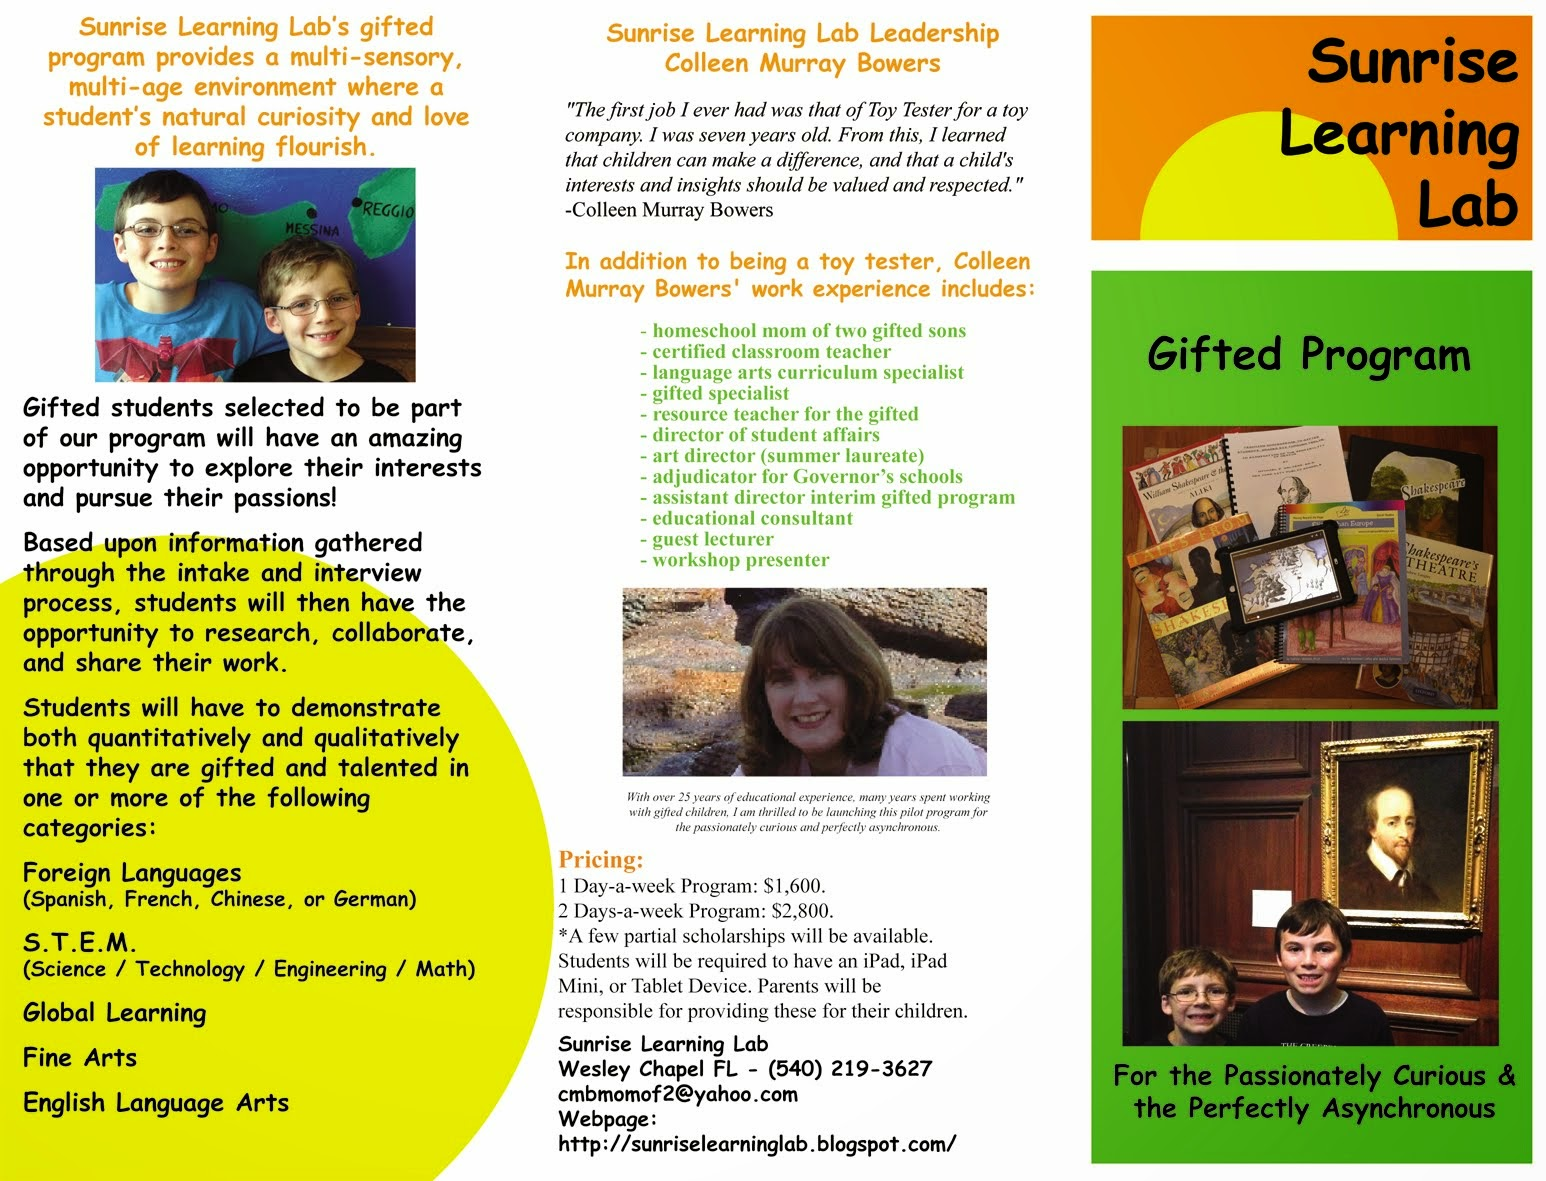 We are happy to announce our gifted pilot program starting Fall of 2014!